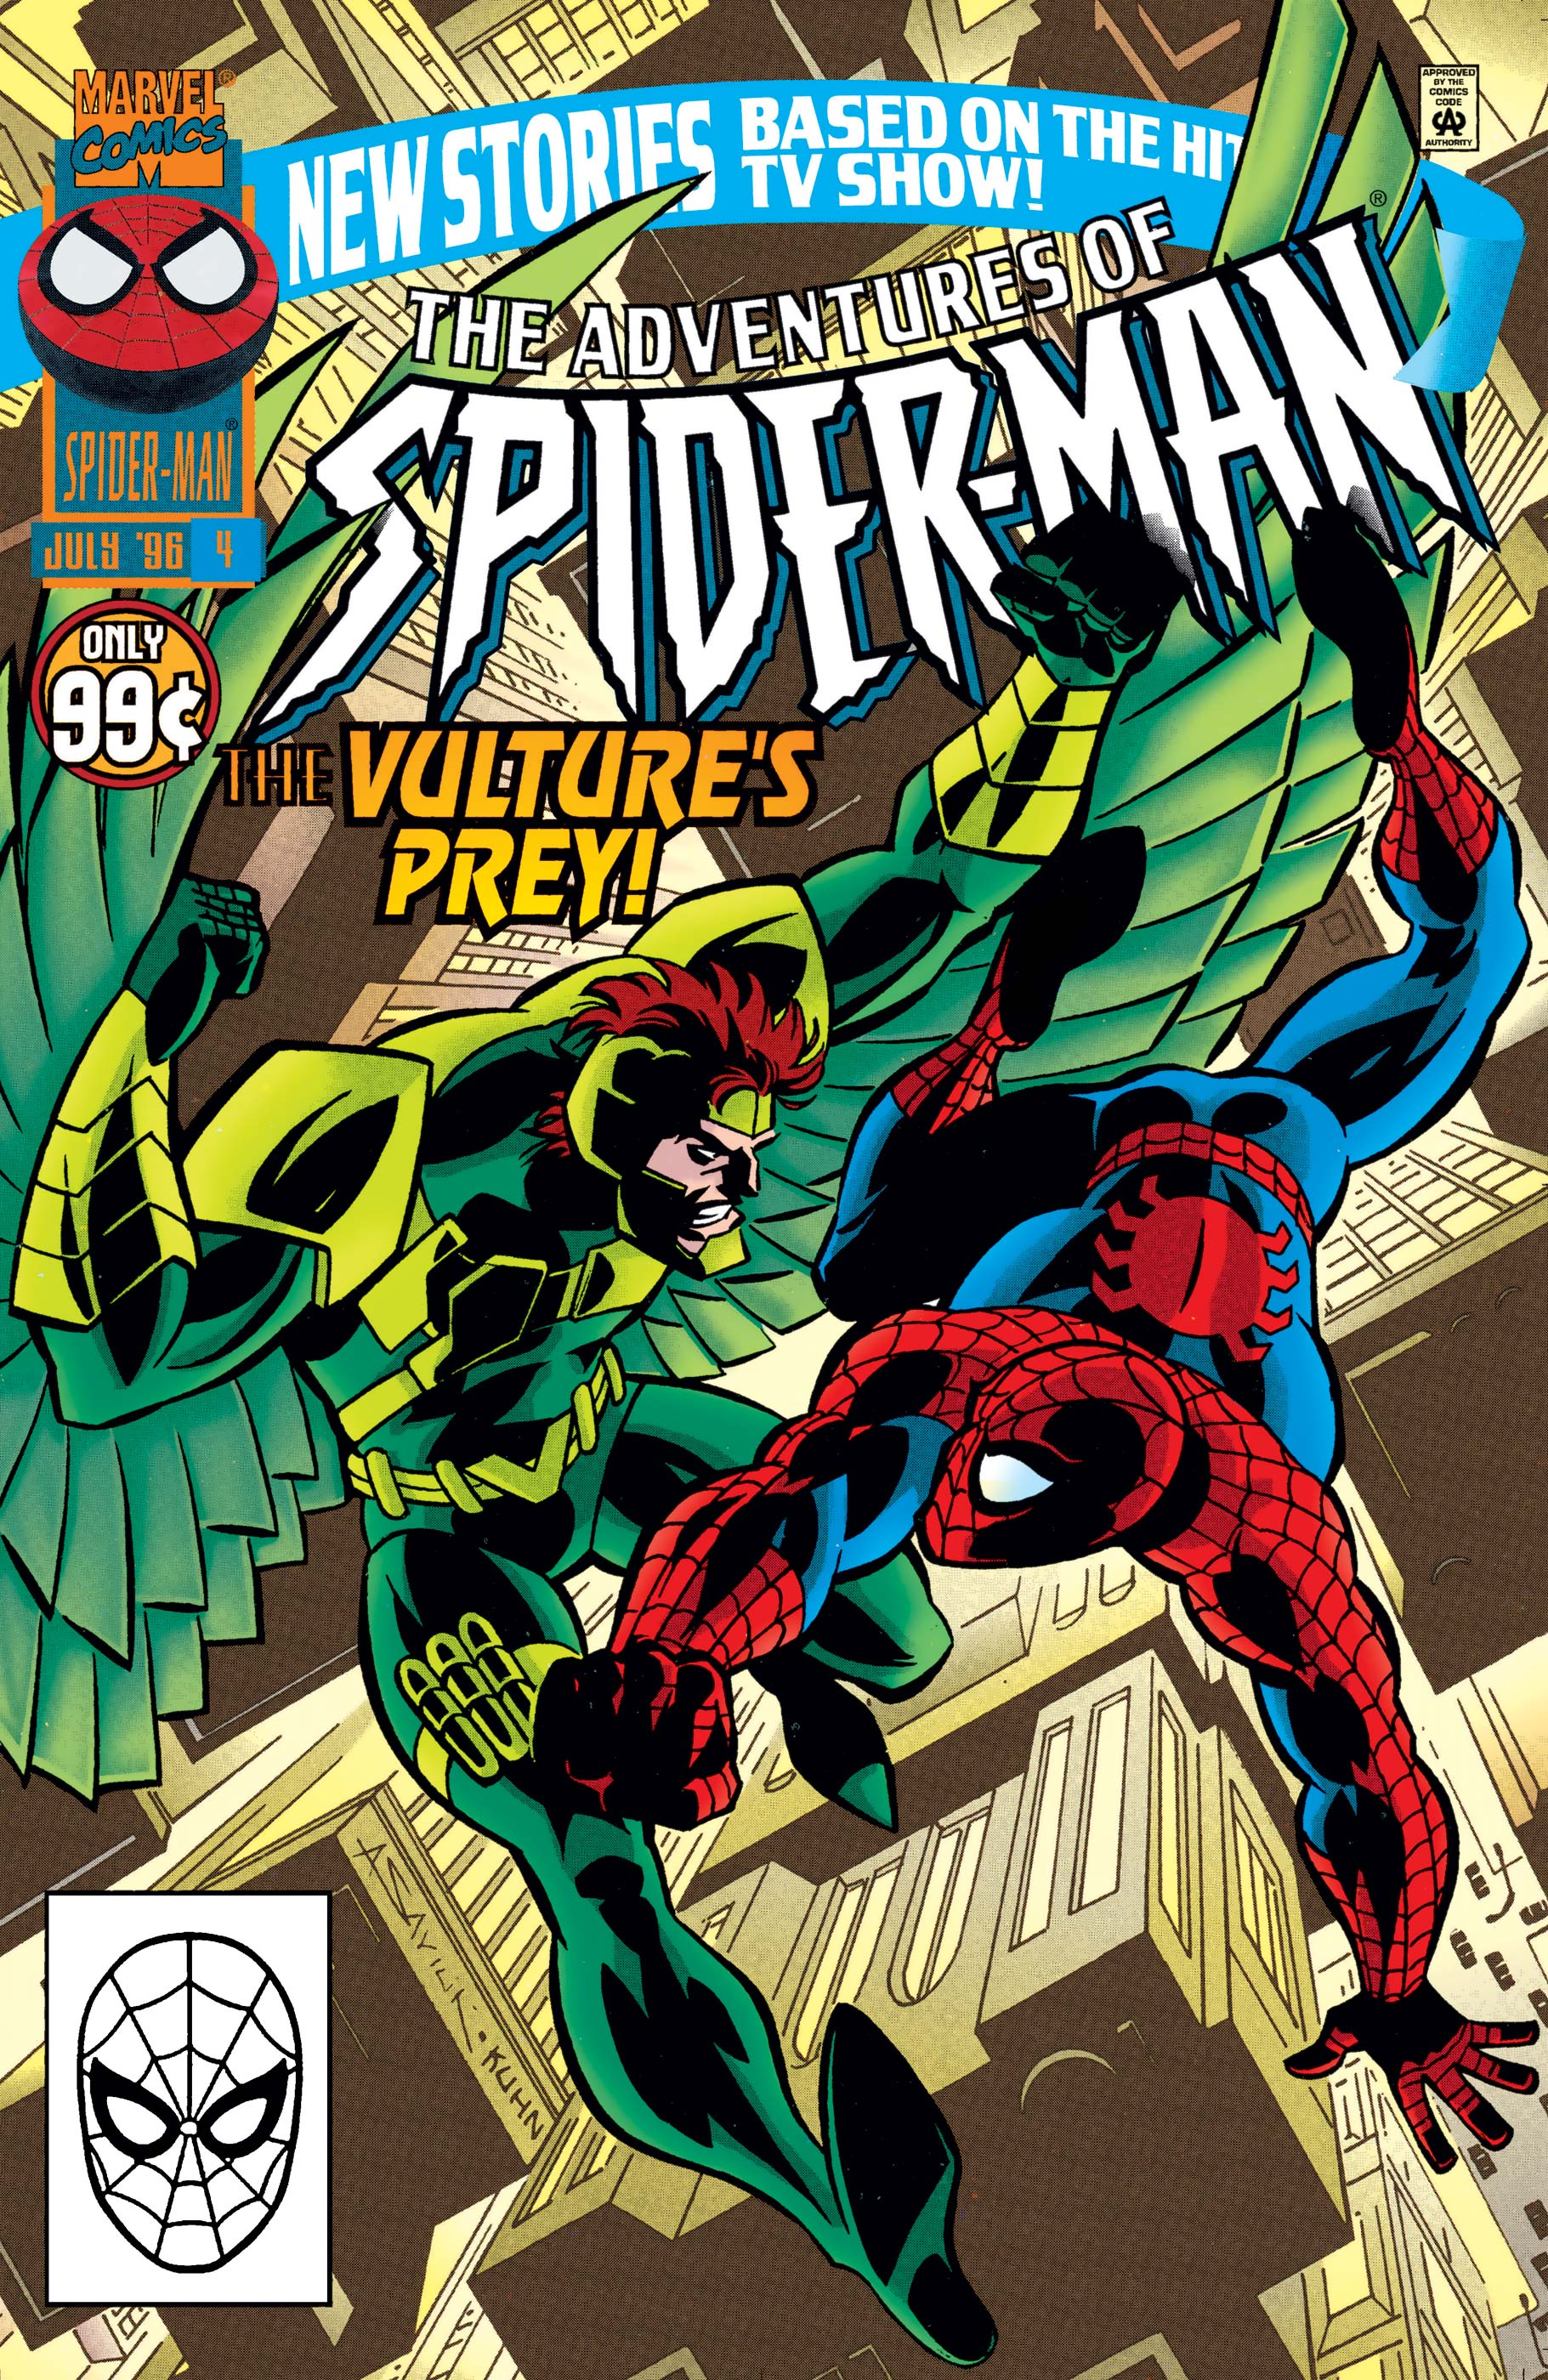 Adventures of Spider-Man (1996) #4